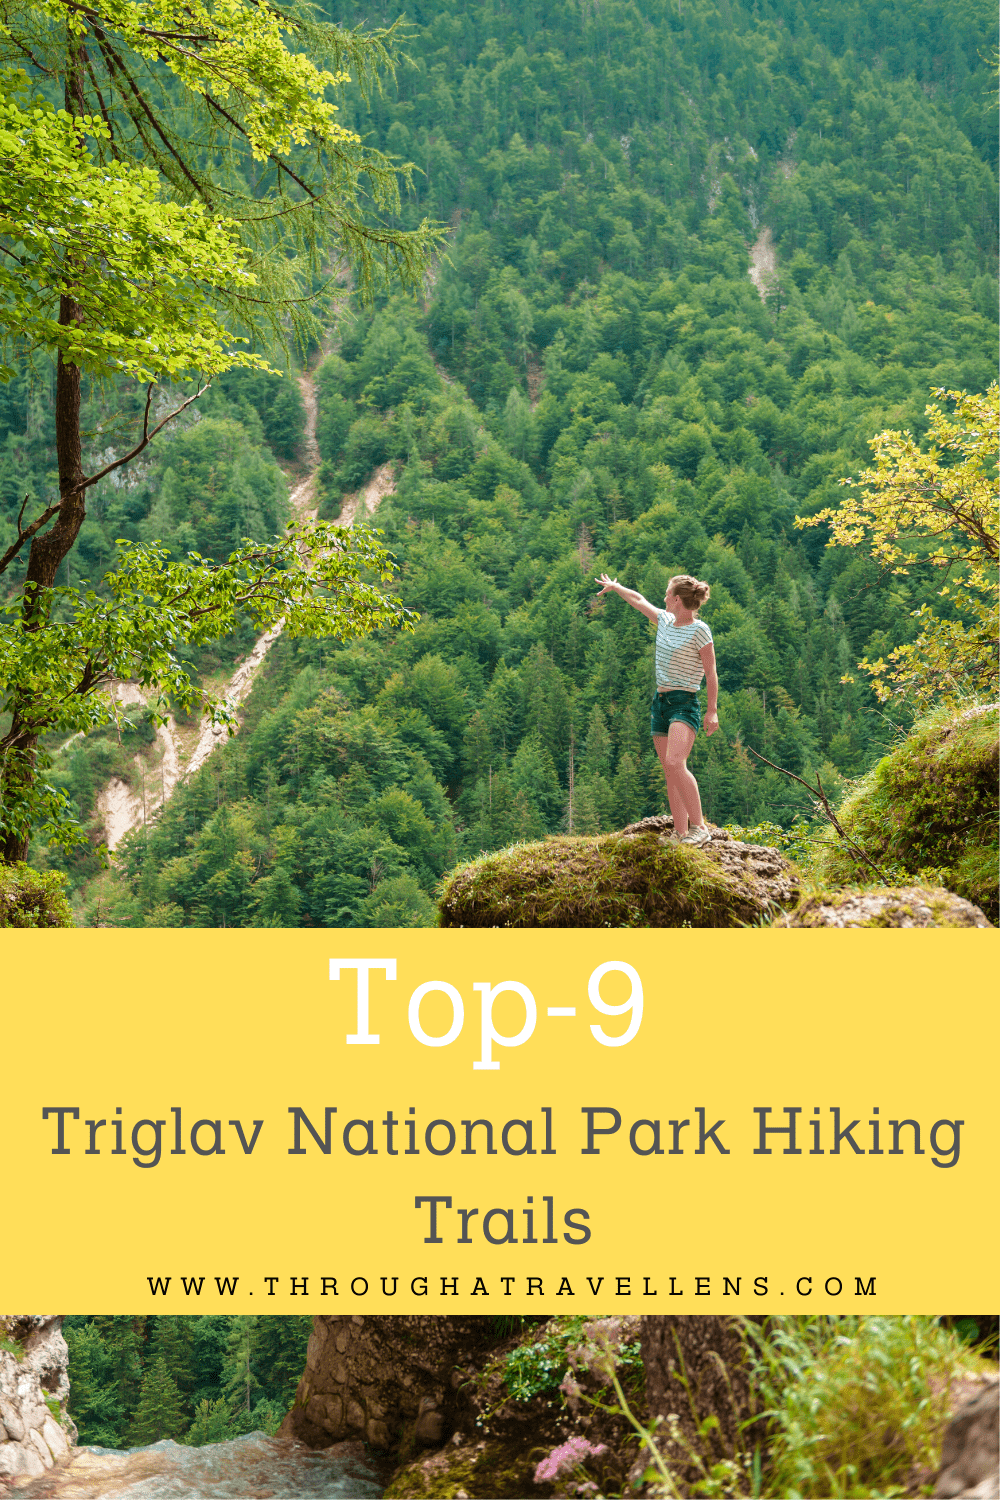 Top-9 Triglav National Park Hiking Trails